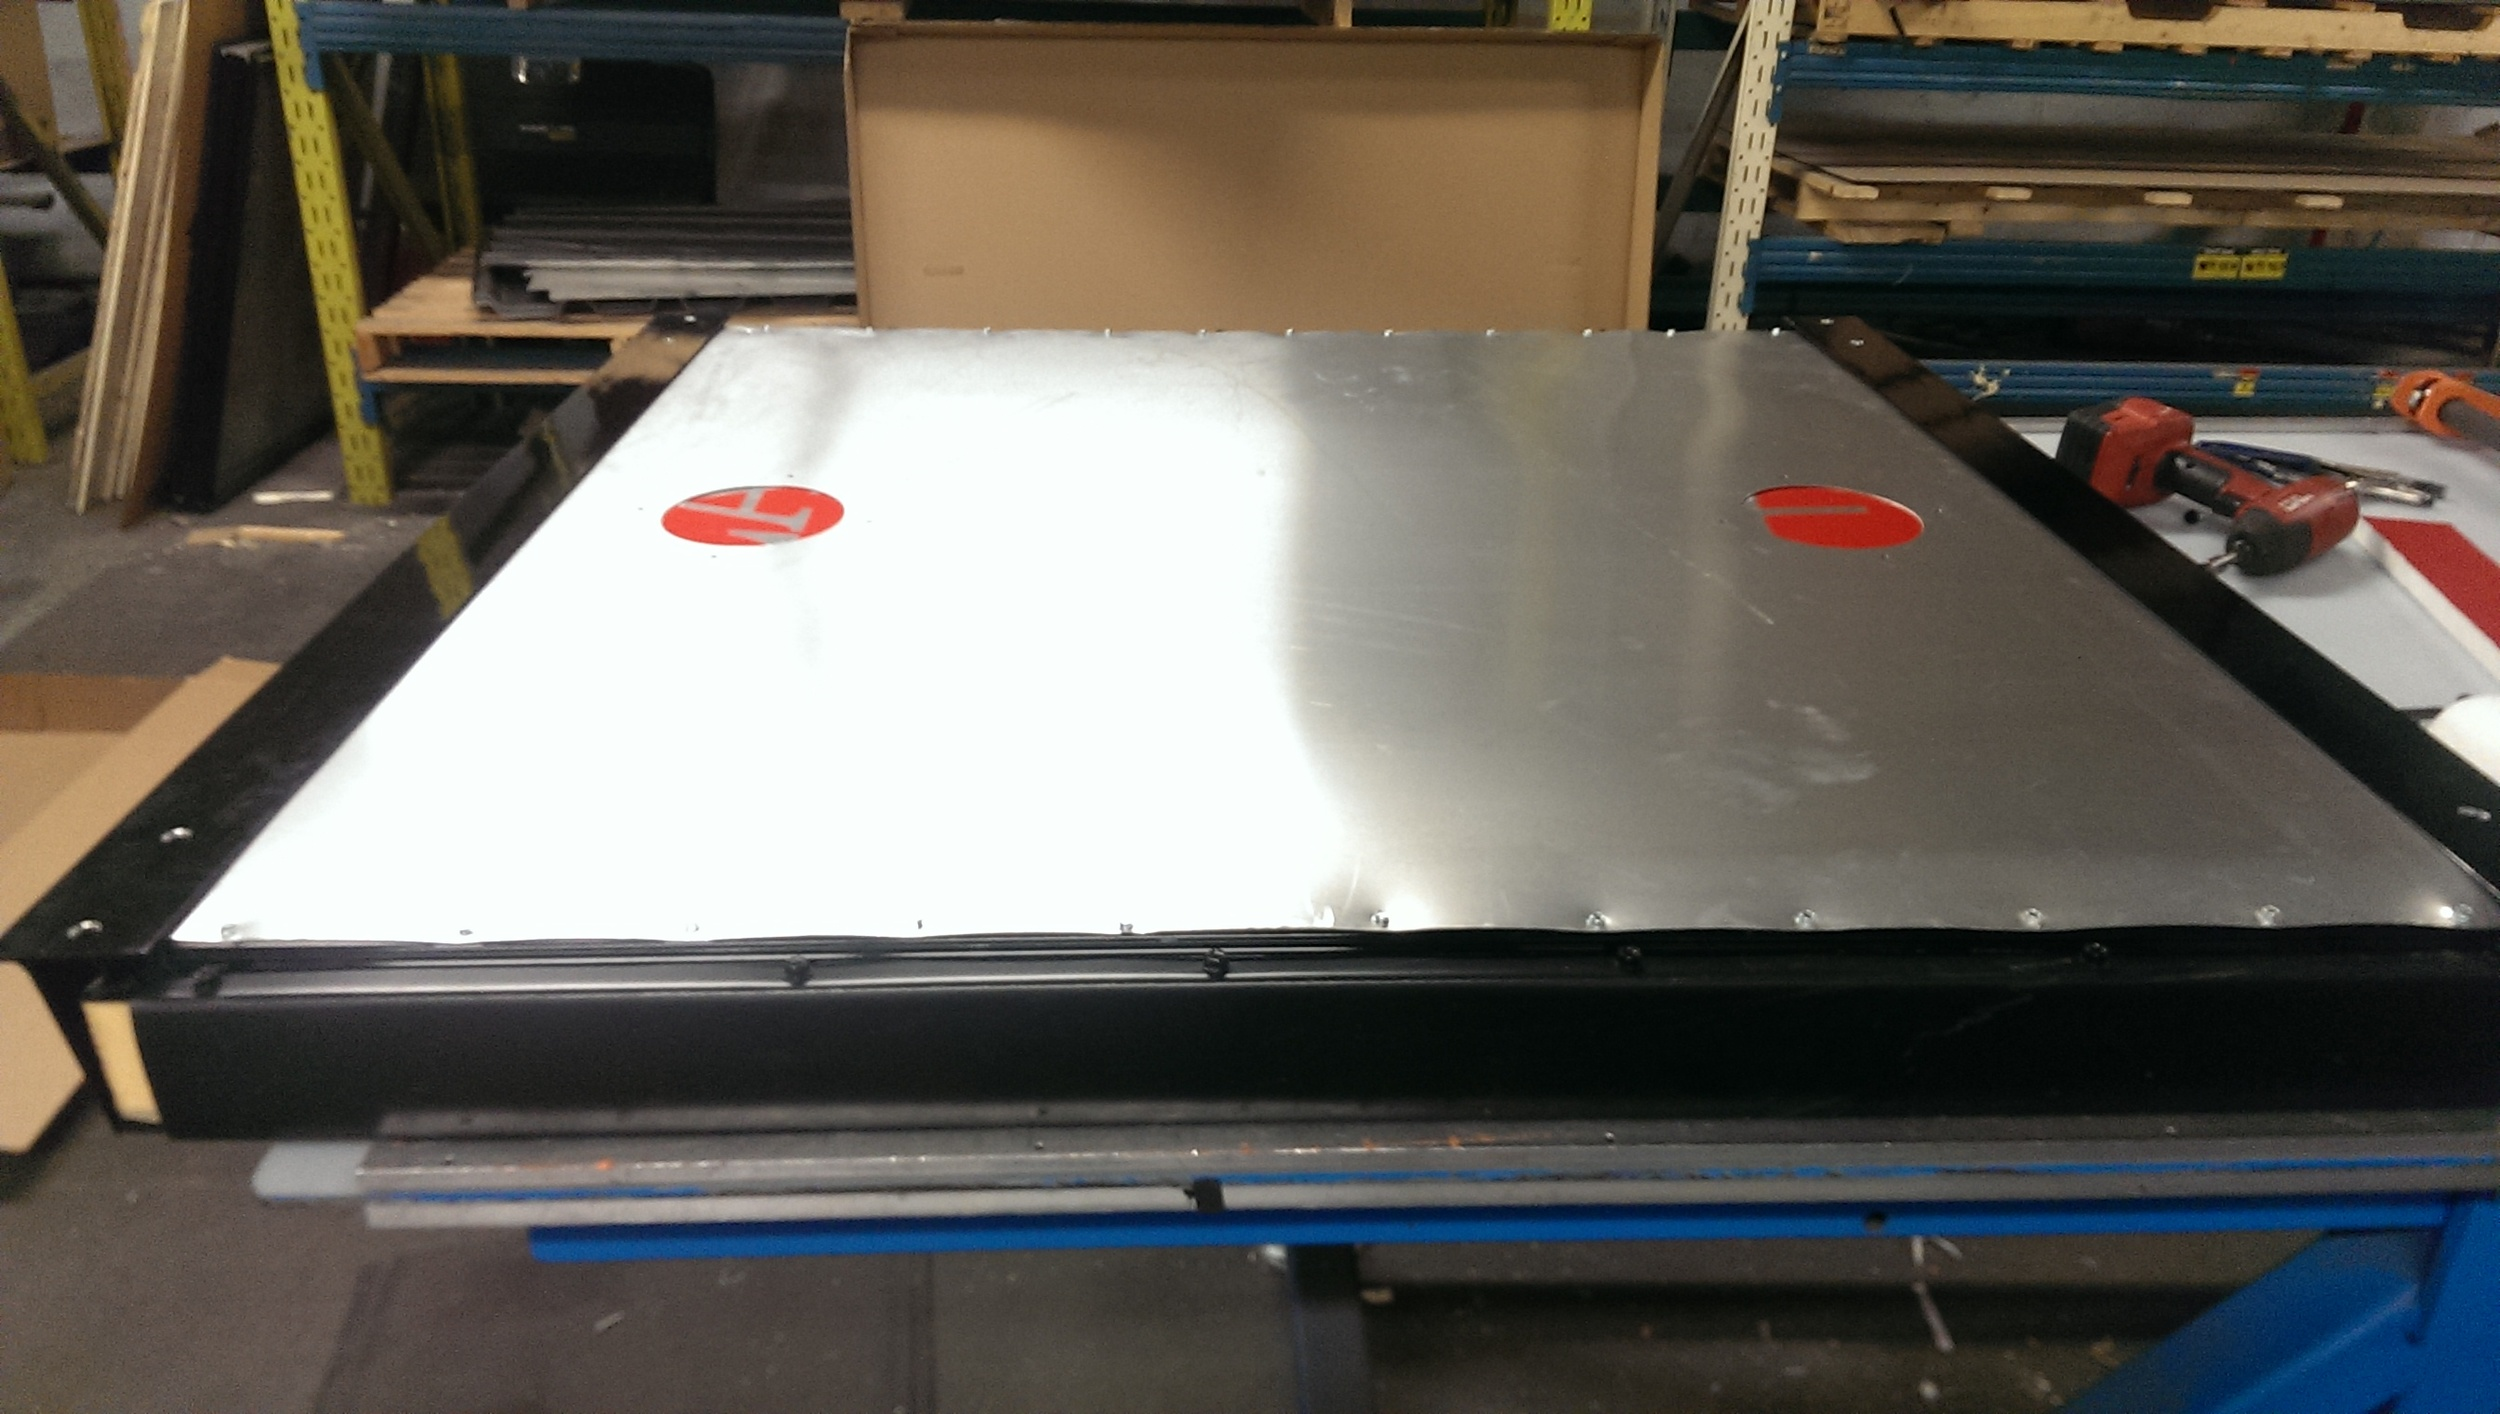 Aluminum plate with 5 inch holes for penetration. Mounts attached for fit.